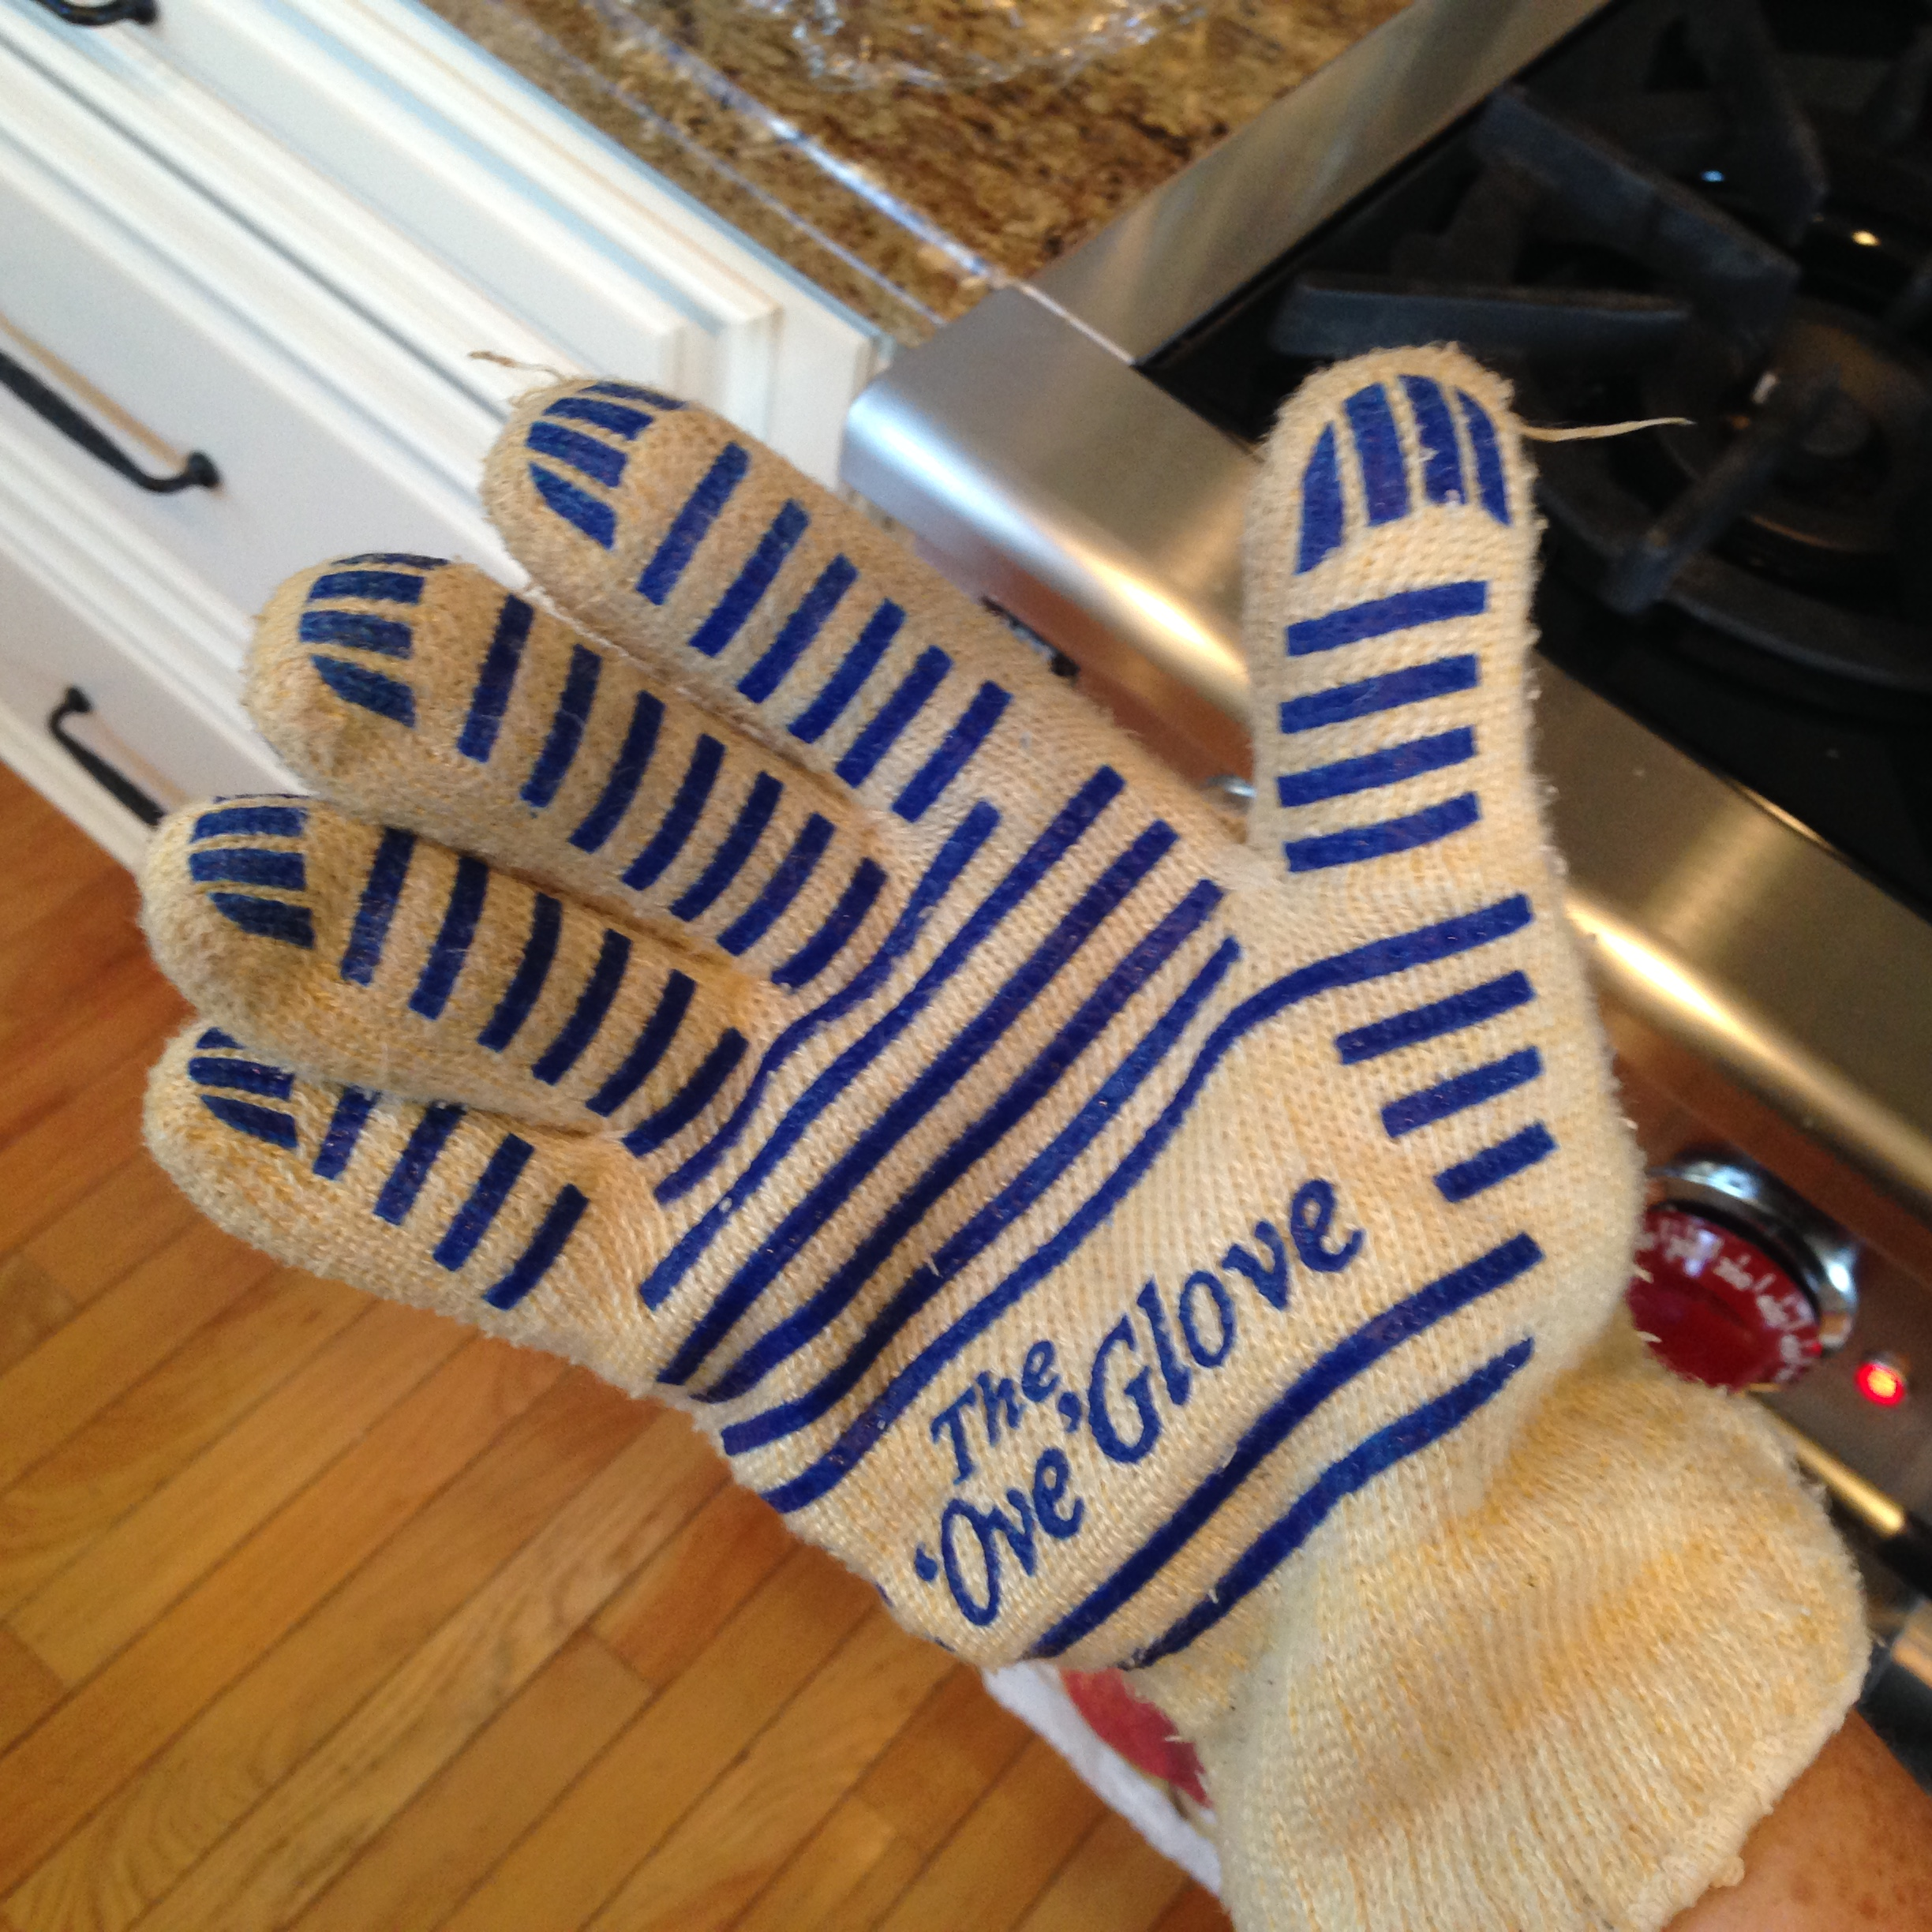 Ode to an Ove' Glove